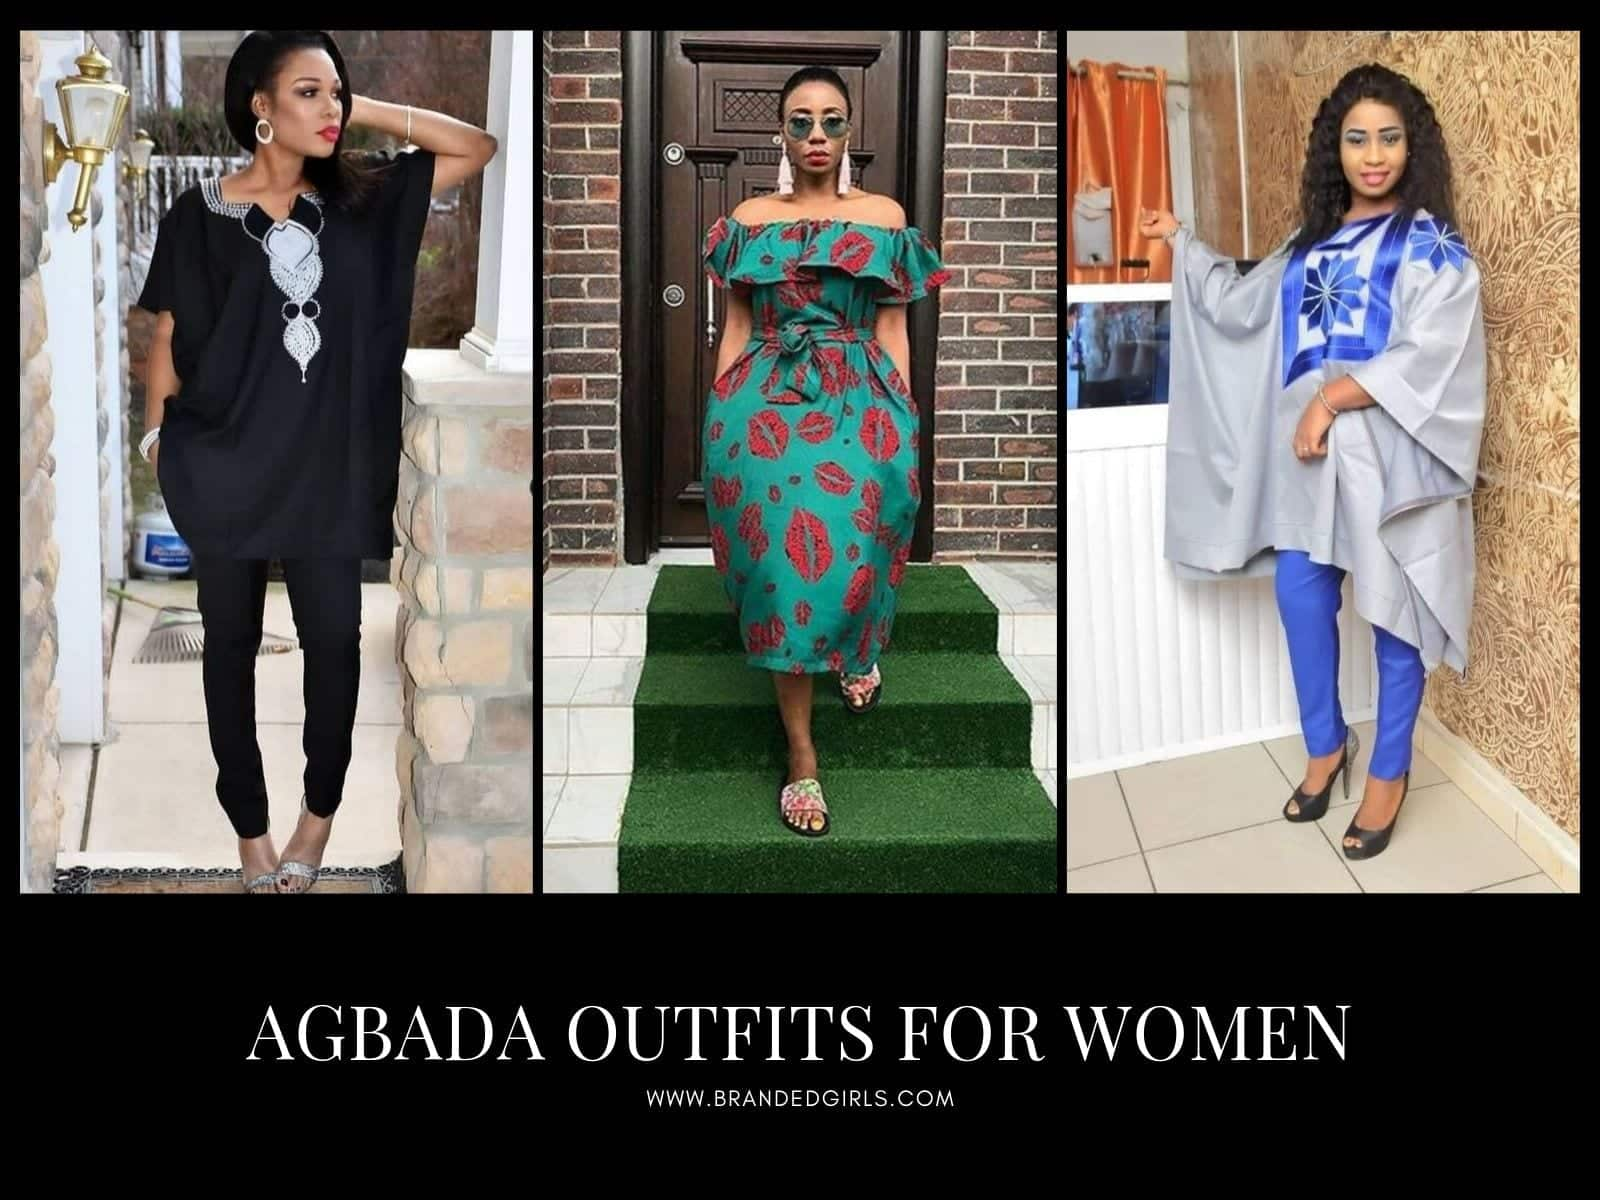 Agbada-Outfits-for-Women Agbada Outfits for Women - 20 Ways to Wear Agbada in Style